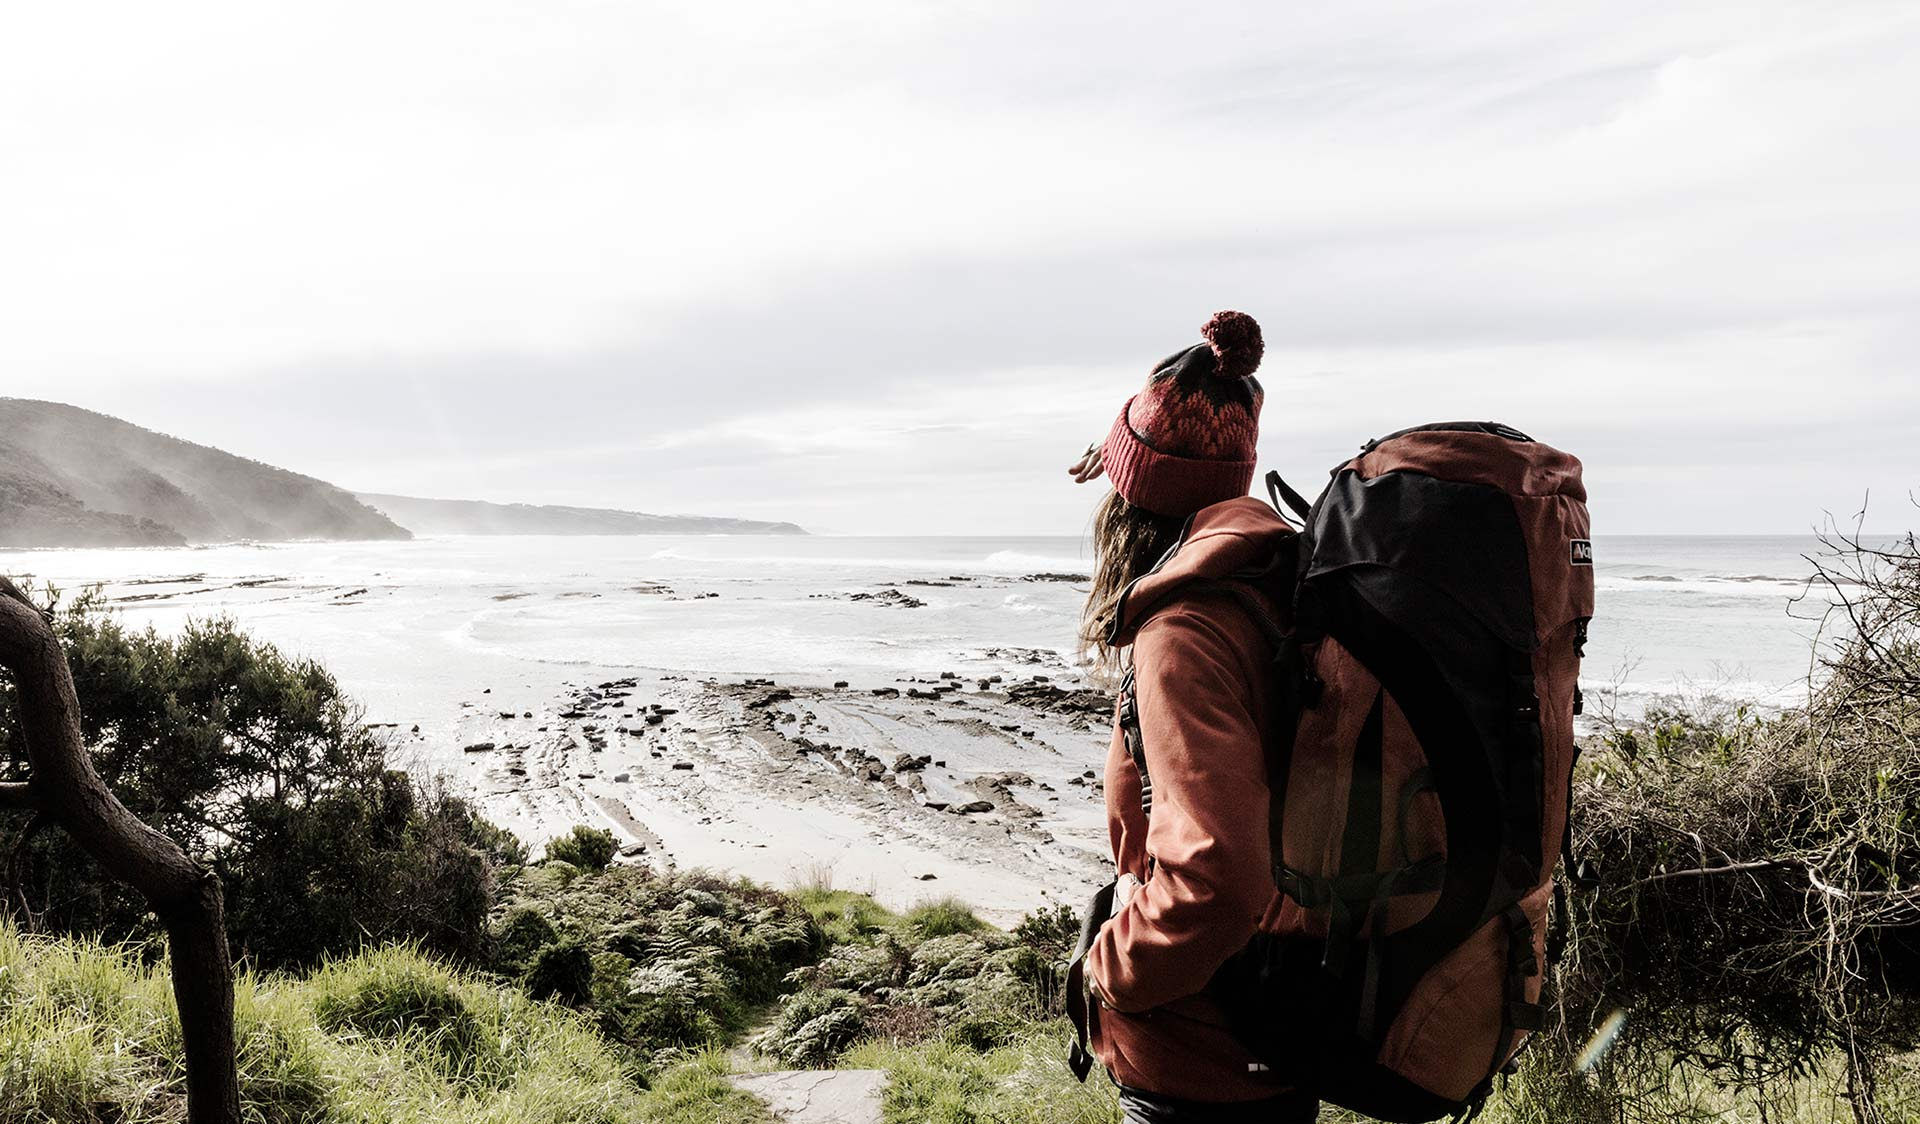 A woman with a large hiking pack takes in the view from Blanket Bay Campground.